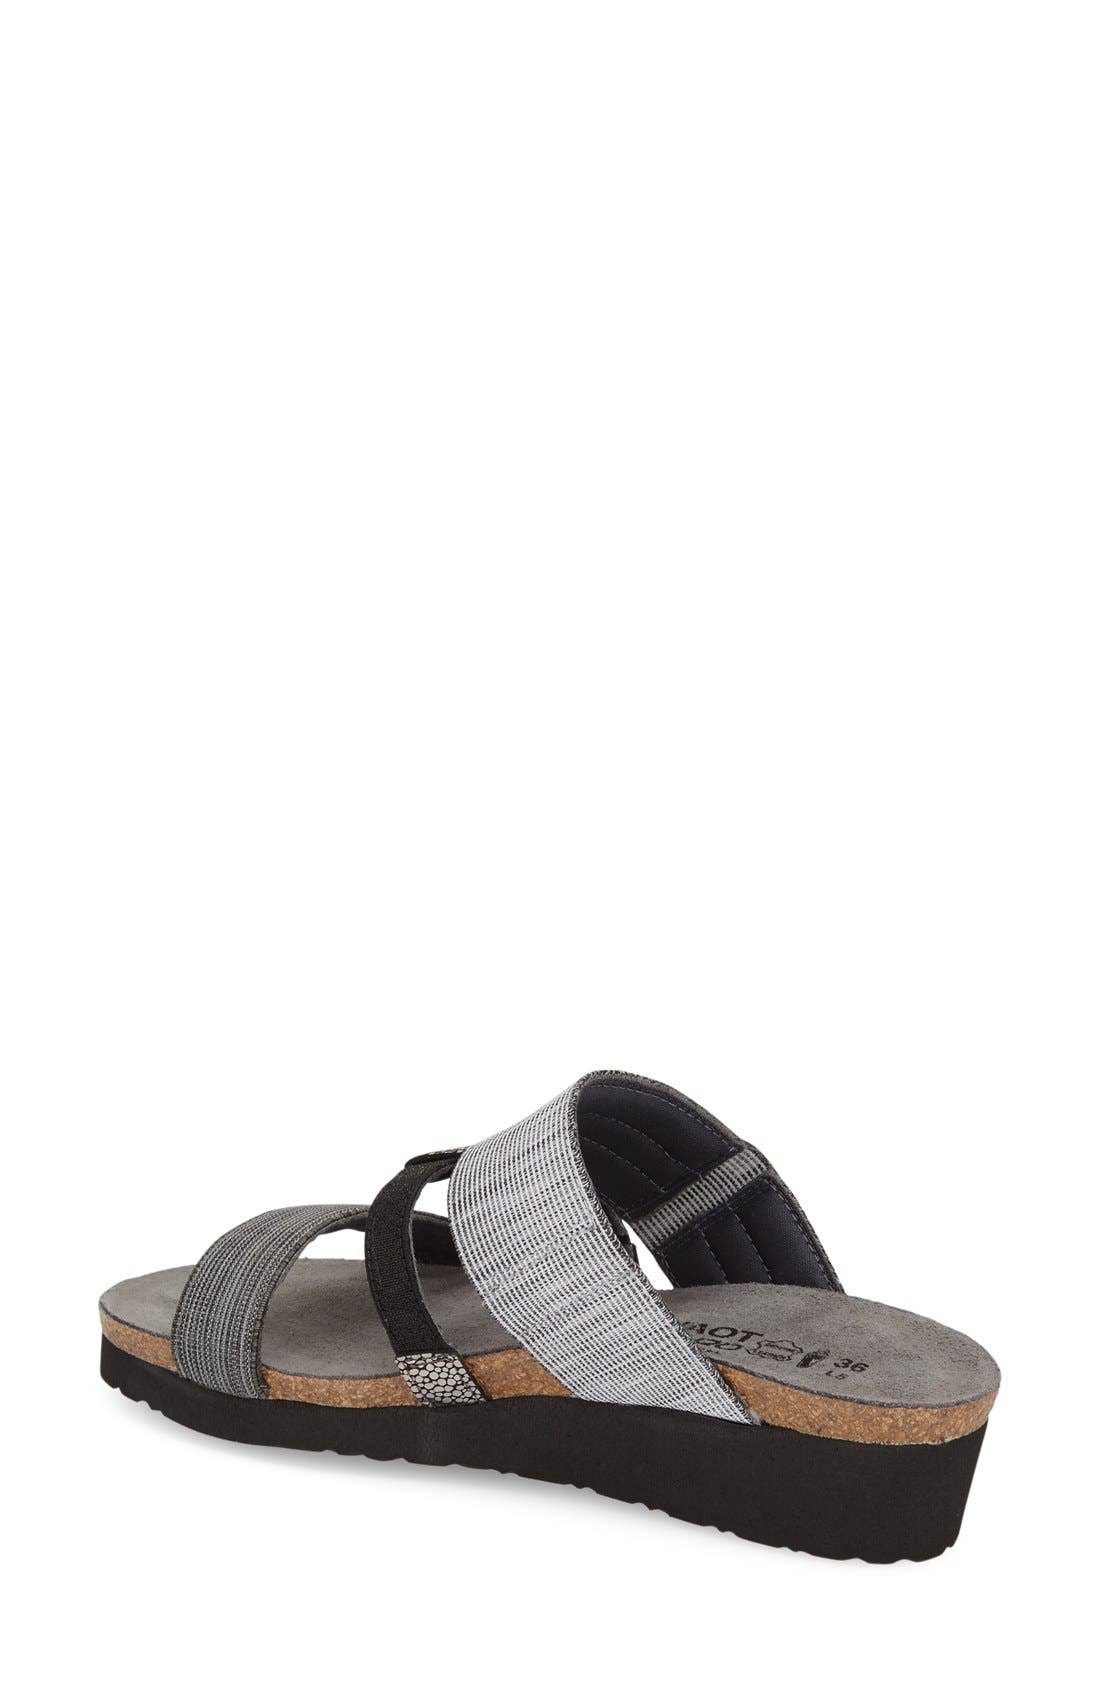 'Brenda' Slip-On Sandal,                             Alternate thumbnail 2, color,                             GREY/ BLACK LEATHER FABRIC